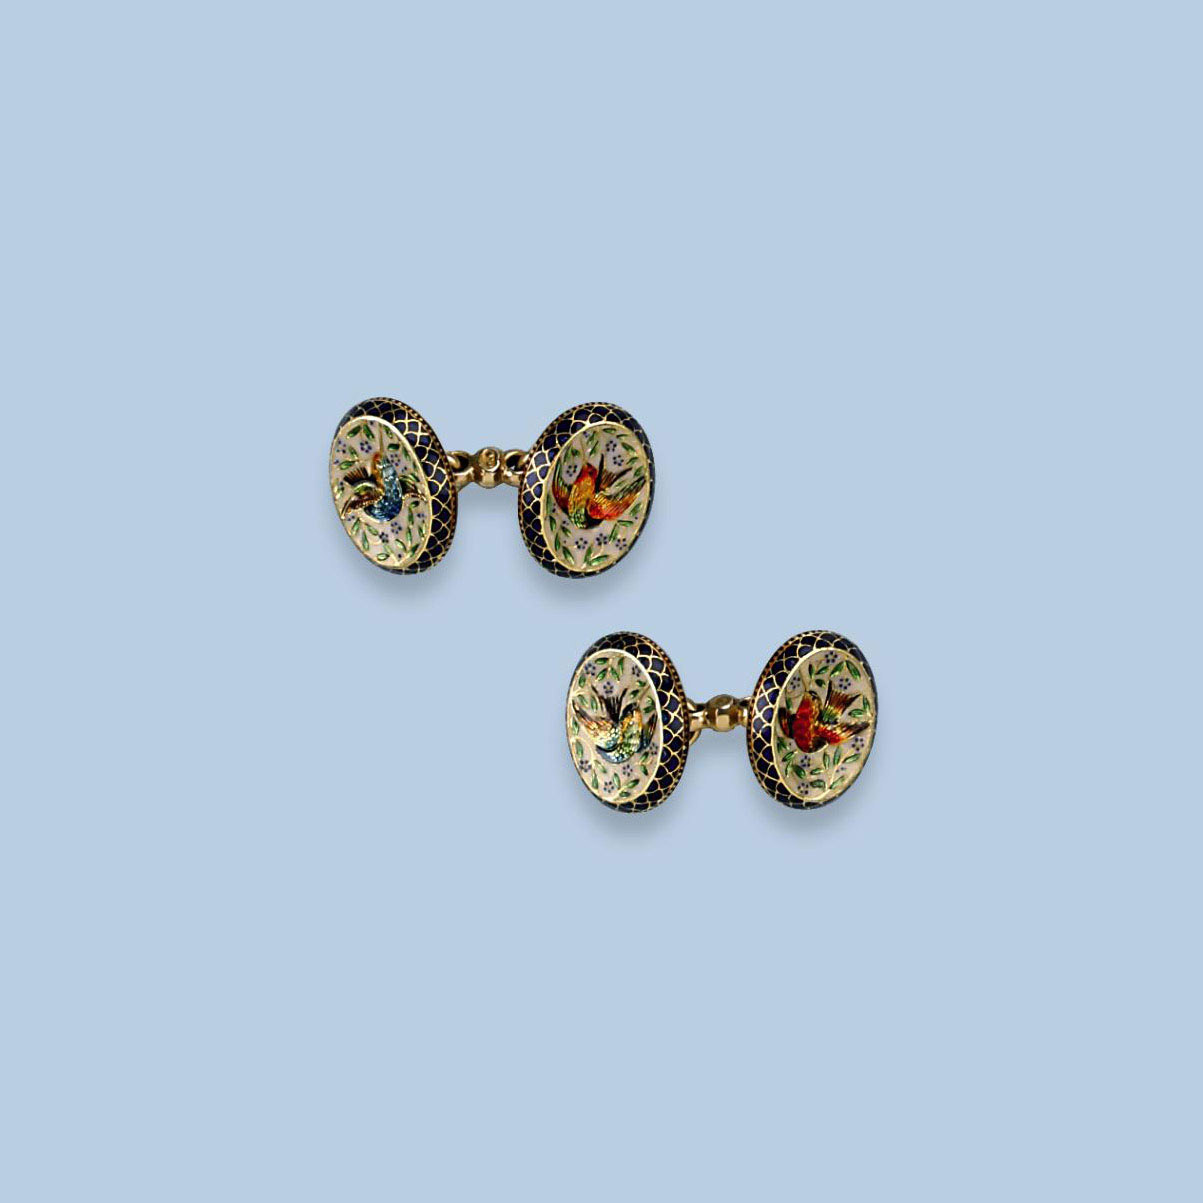 A PAIR OF GOLD AND ENAMEL CUFFLINKS, BY GIULIANO